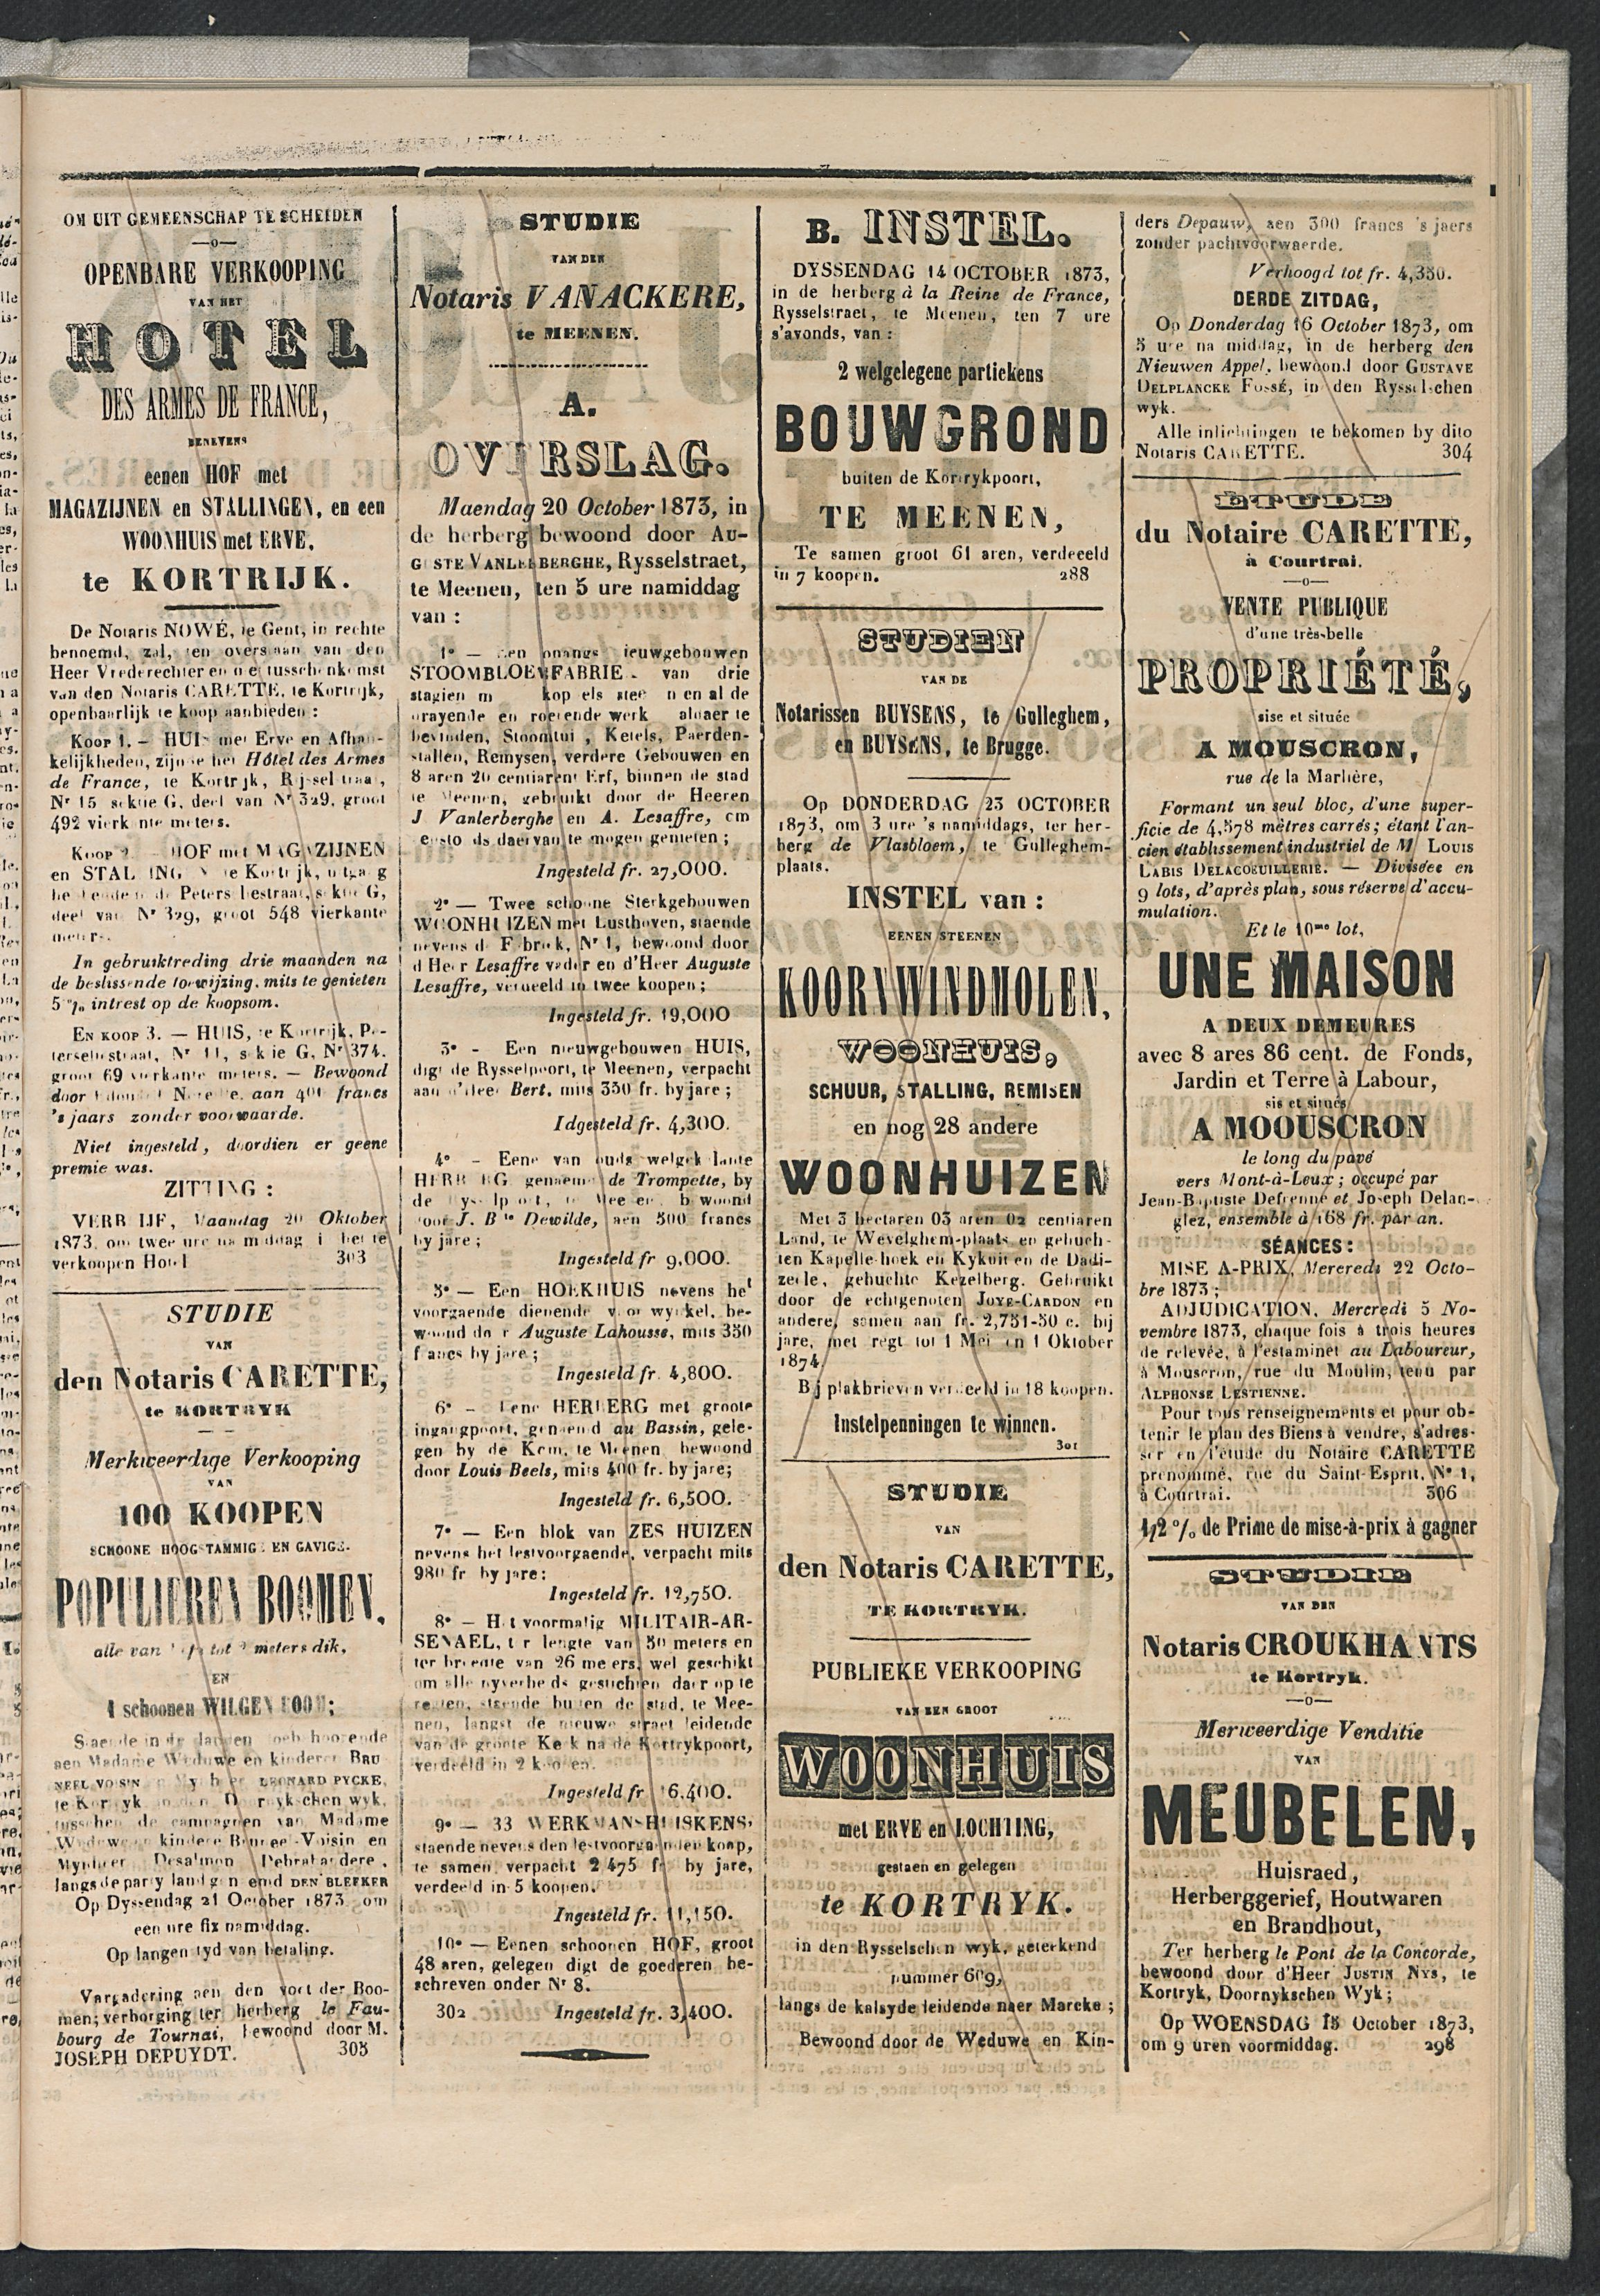 L'echo De Courtrai 1873-10-12 p3